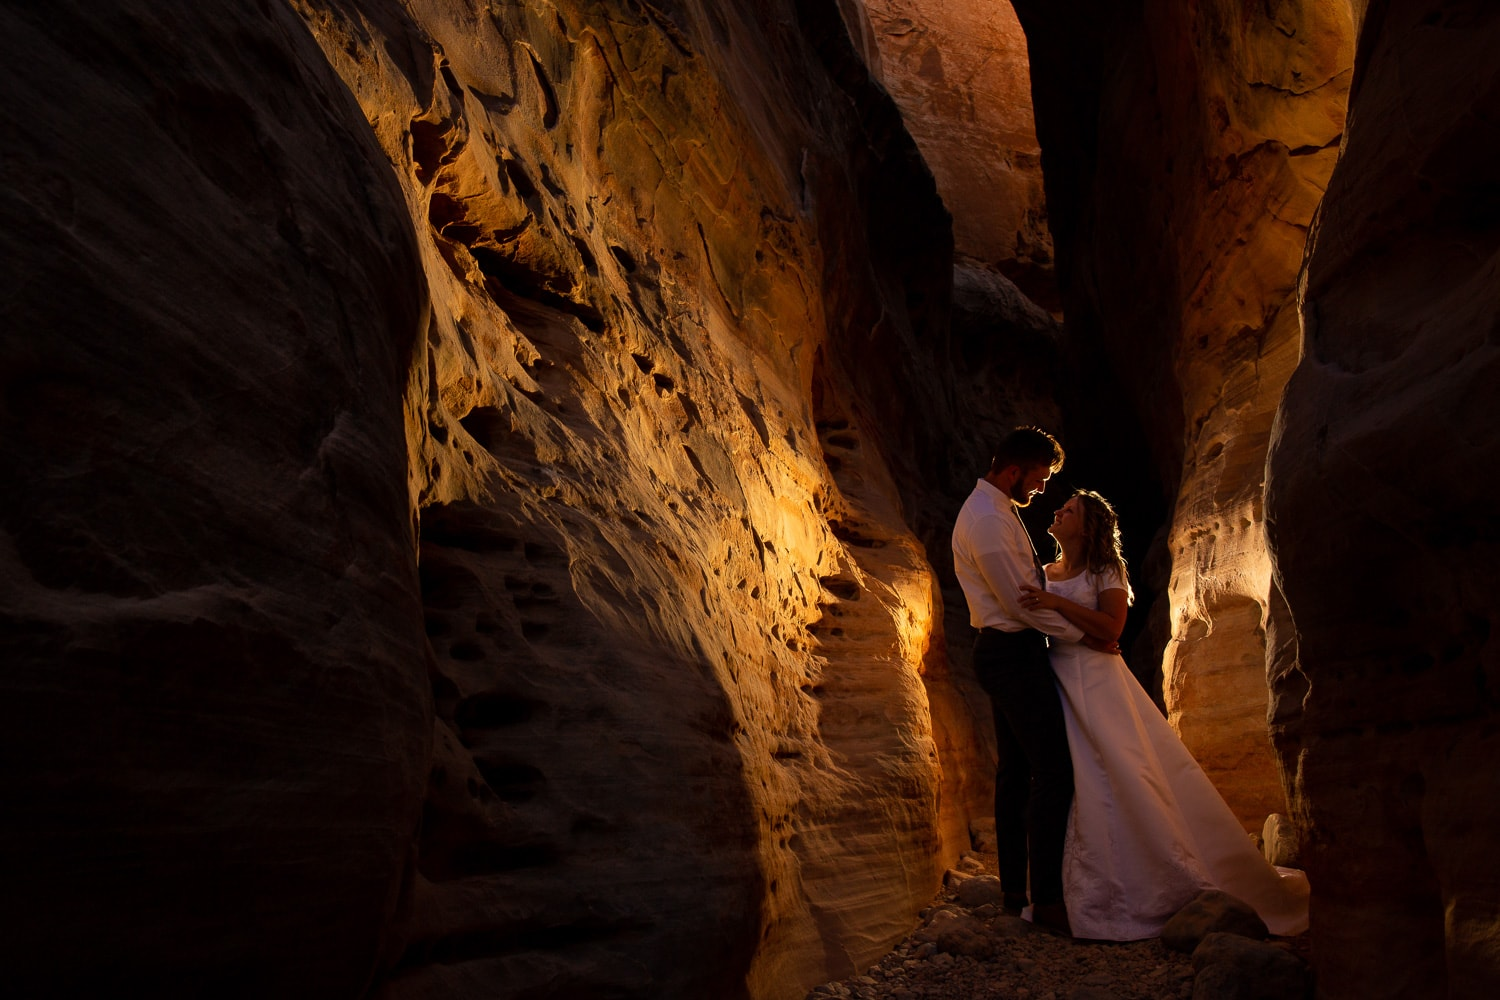 An adventurous wedding couple is photographed in a slot canyon.